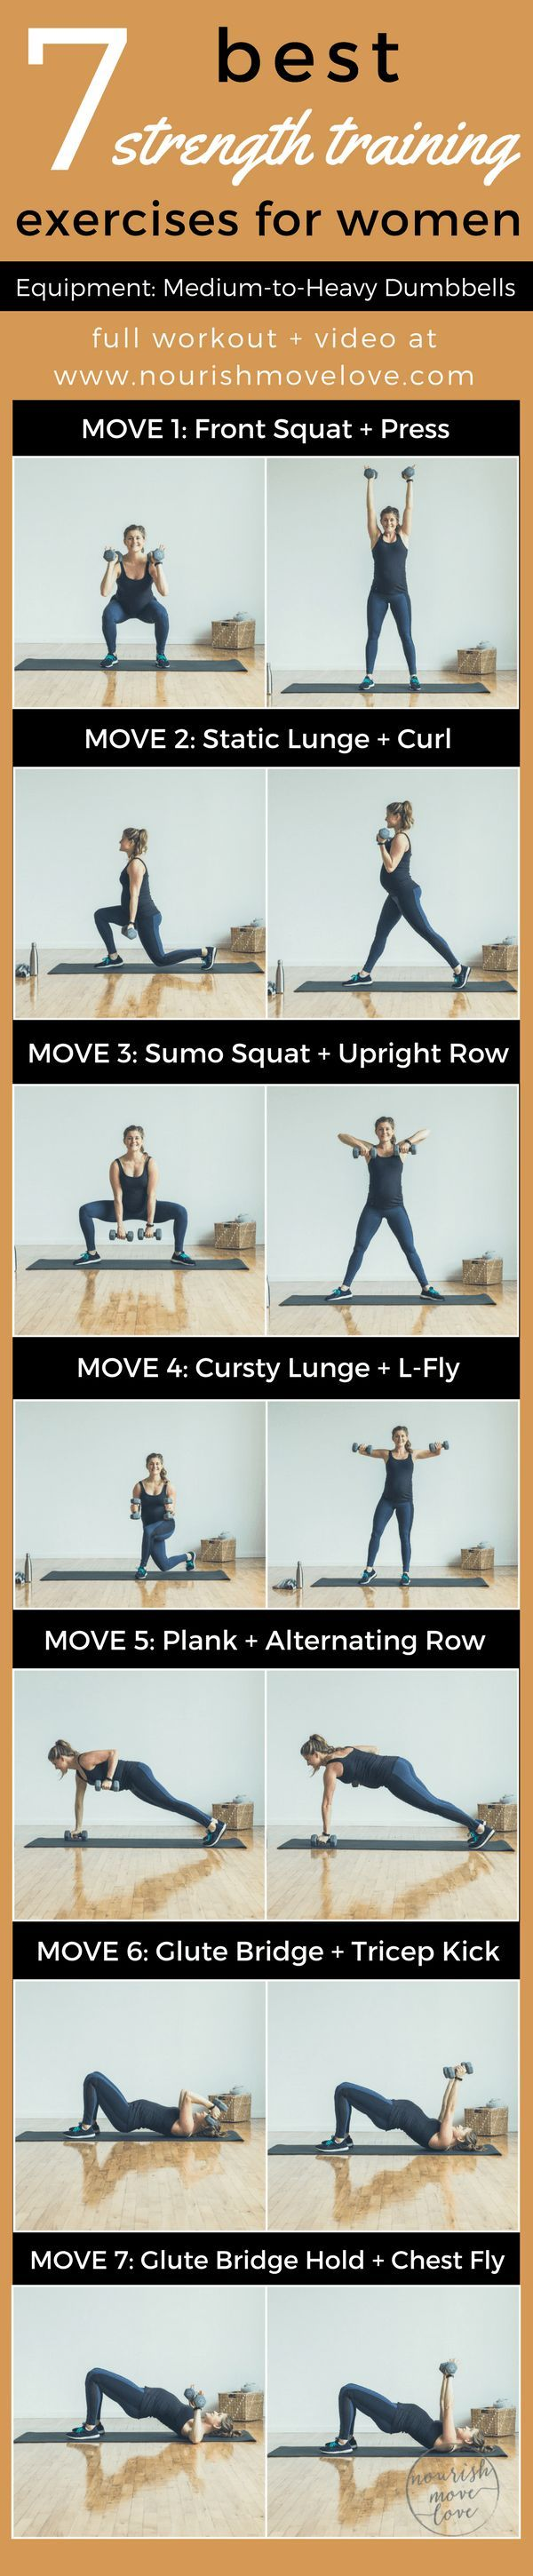 Pair this with short cardio for an all around strength + cardio workout. 7 Best Strength Training Exercises for Women | www.nourishmovelove.com